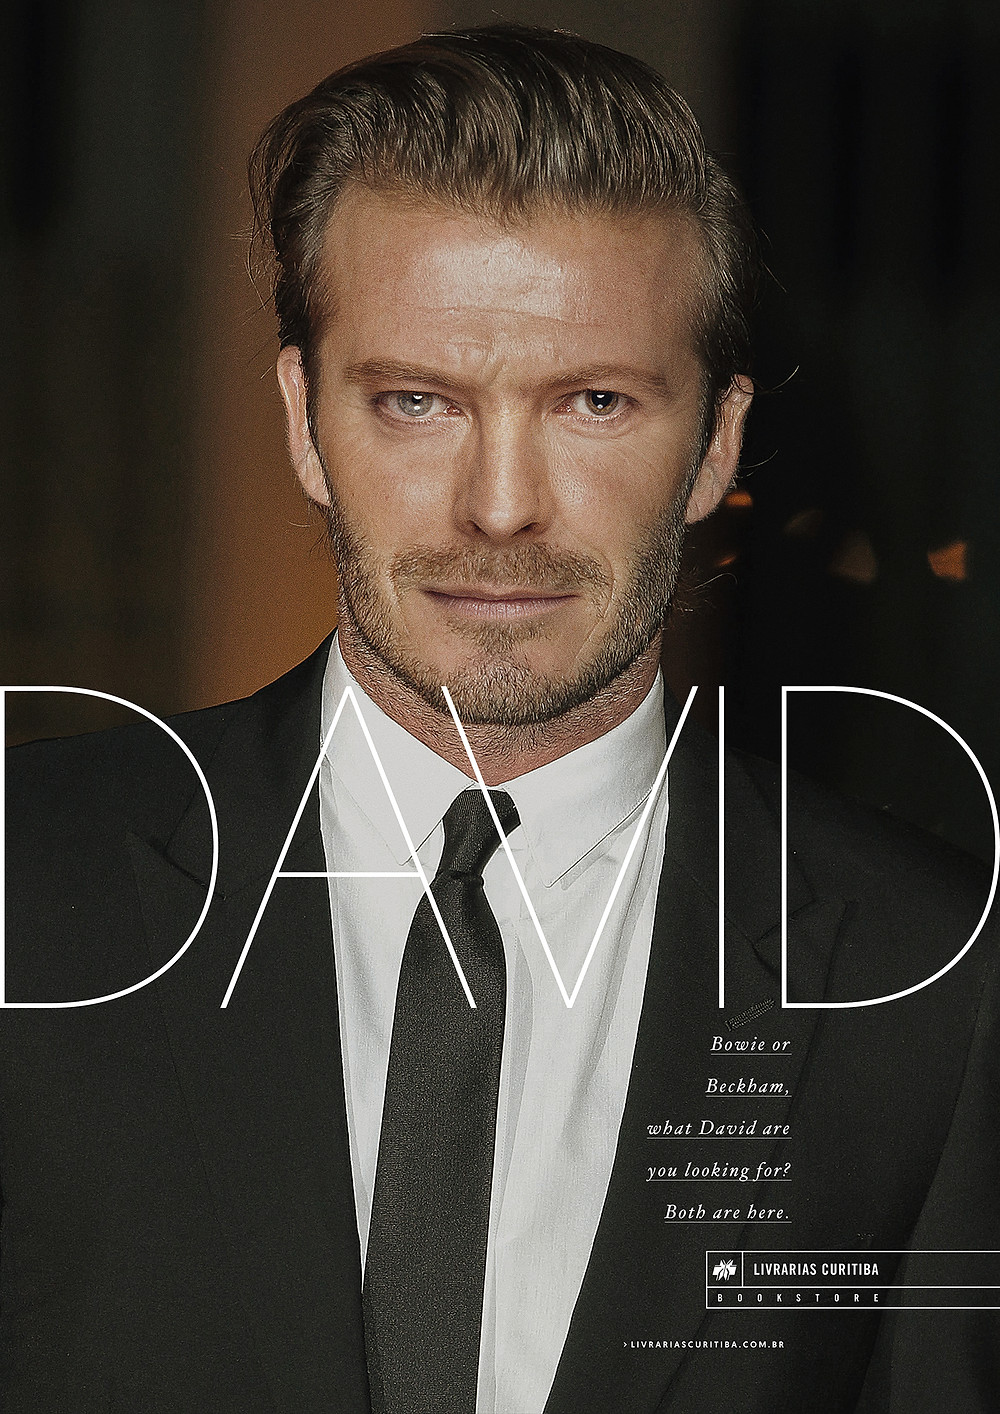 Biography Books: David